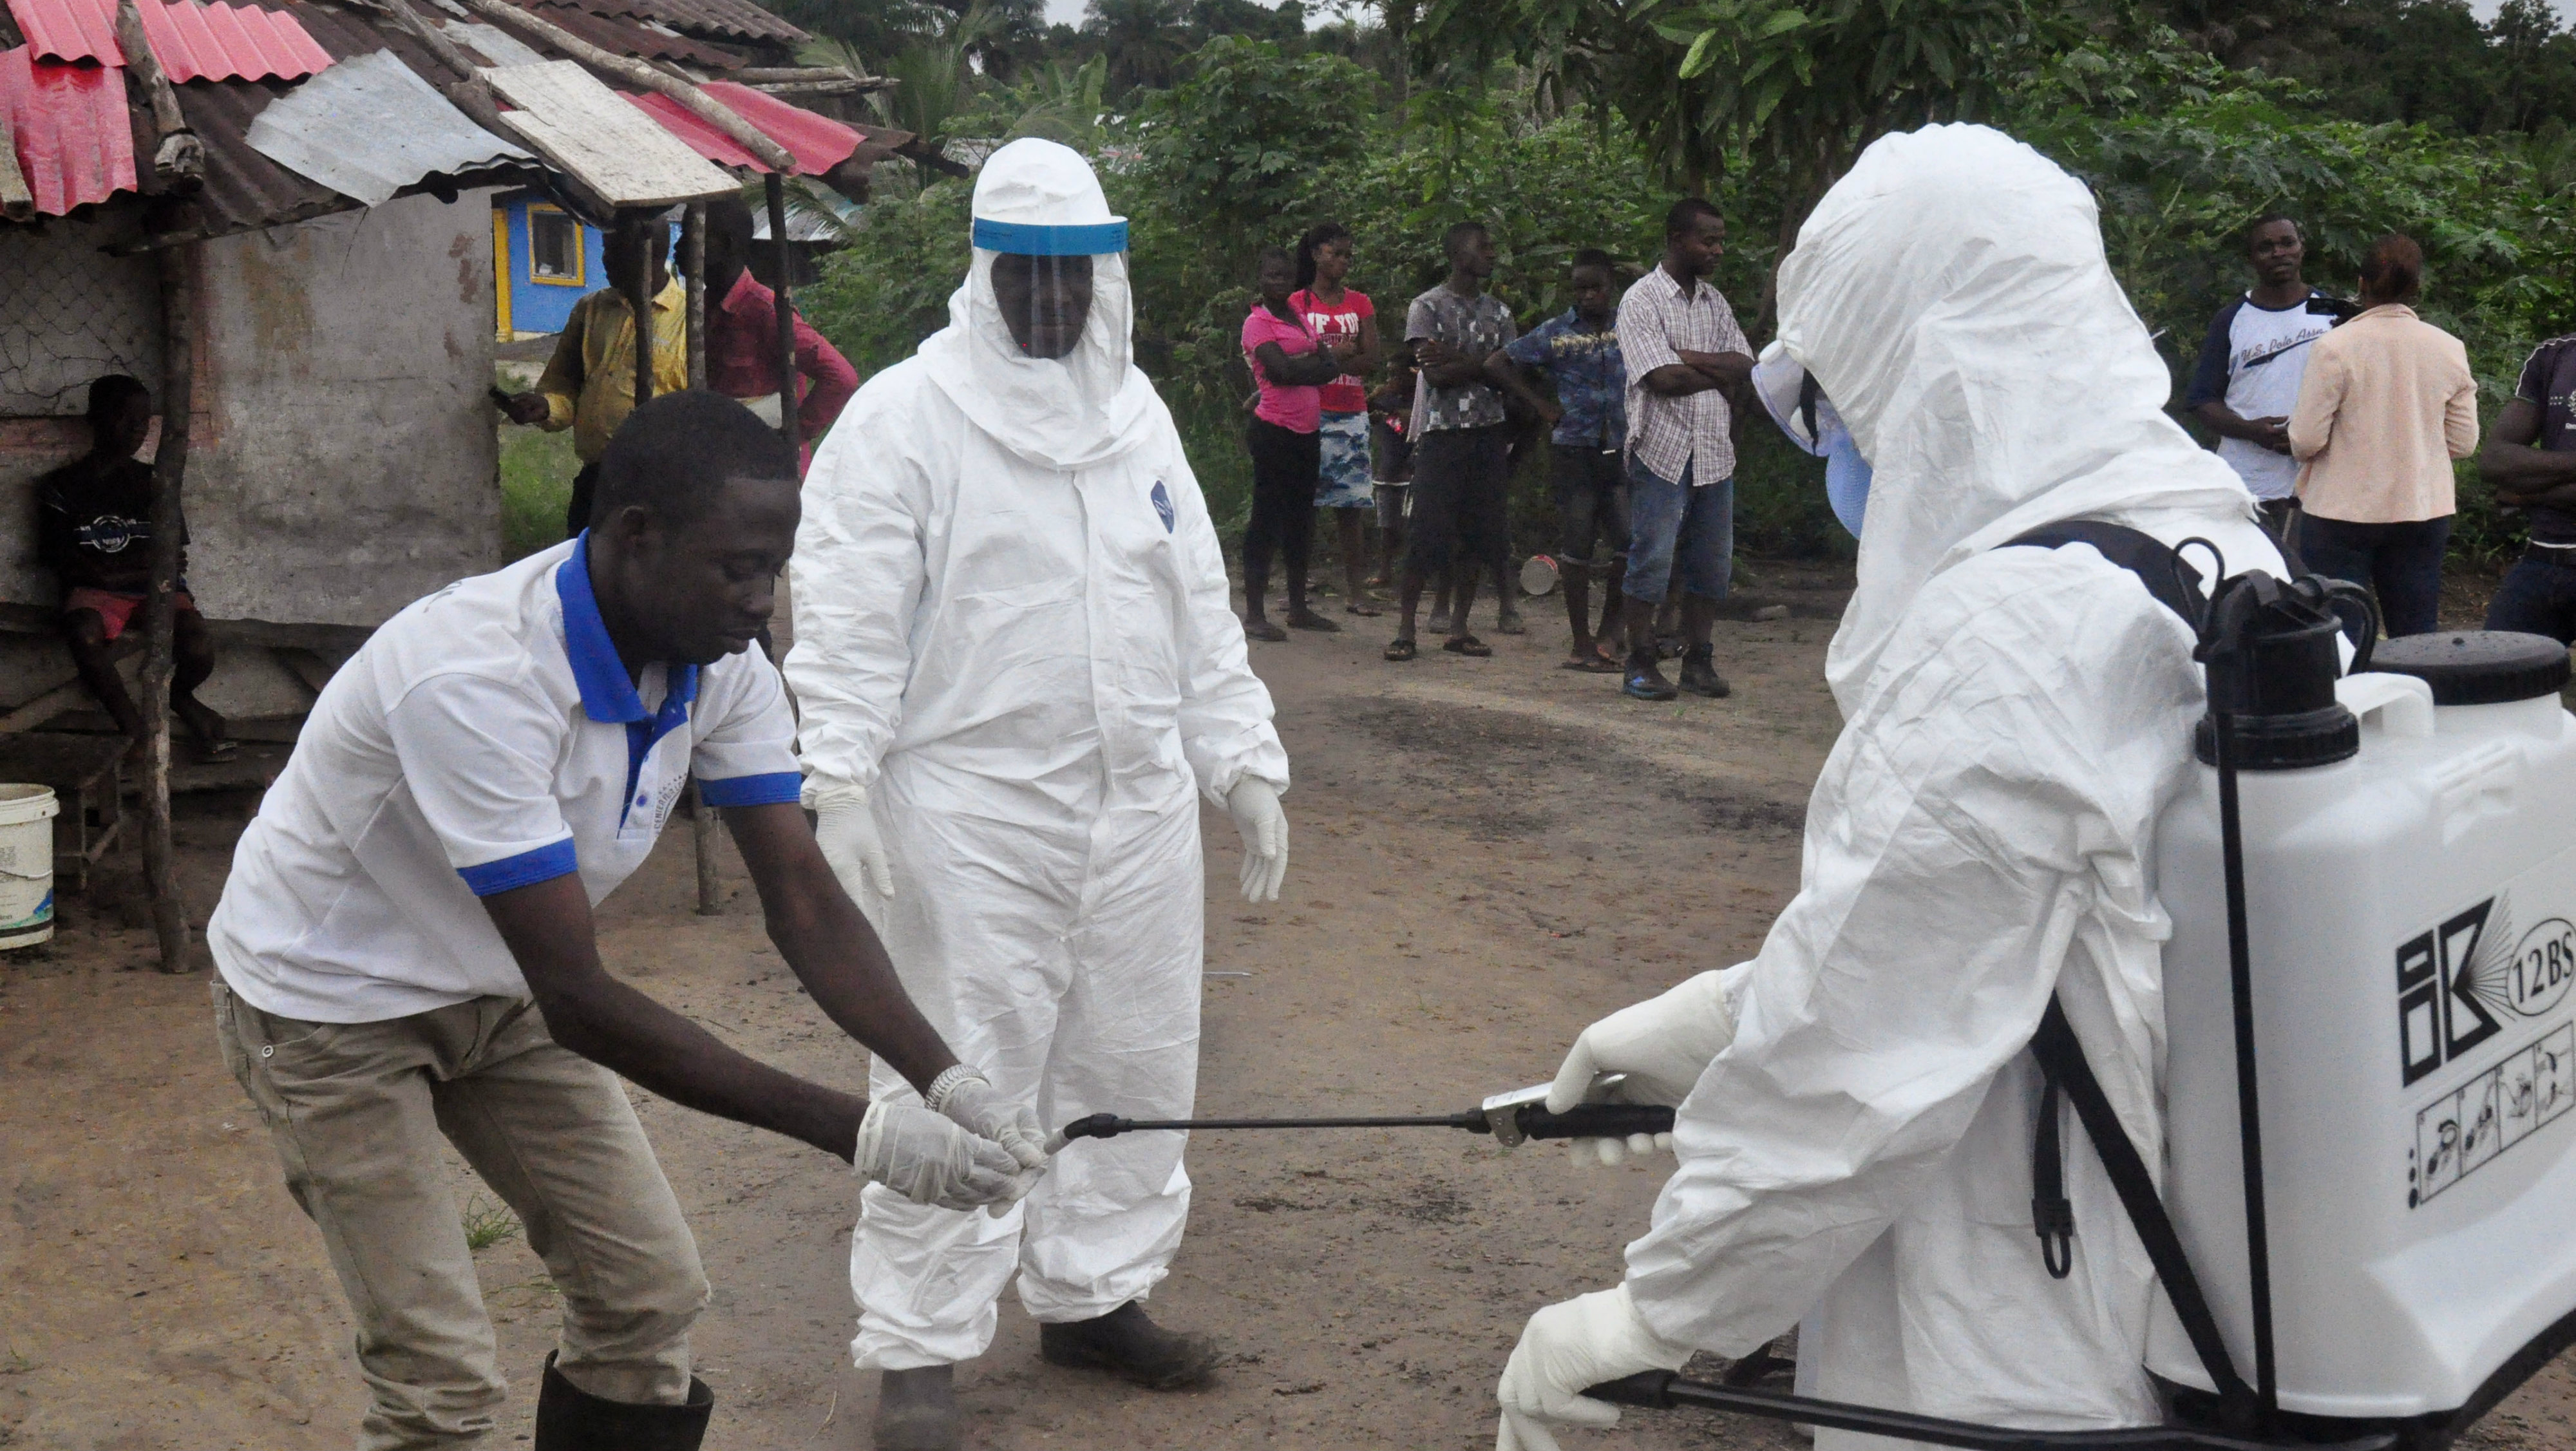 Health workers wash their hands after taking a blood specimen from a child to test for the Ebola virus in an area where a 17-year old boy died from the virus on the outskirts of Monrovia, Liberia, Tuesday, June 30, 2015. Liberian authorities on Tuesday quarantined the area where the corpse of the boy was found, sparking fears this West African country could face another outbreak of the disease nearly two months after being declared Ebola-free. (AP Photo/ Abbas Dulleh)